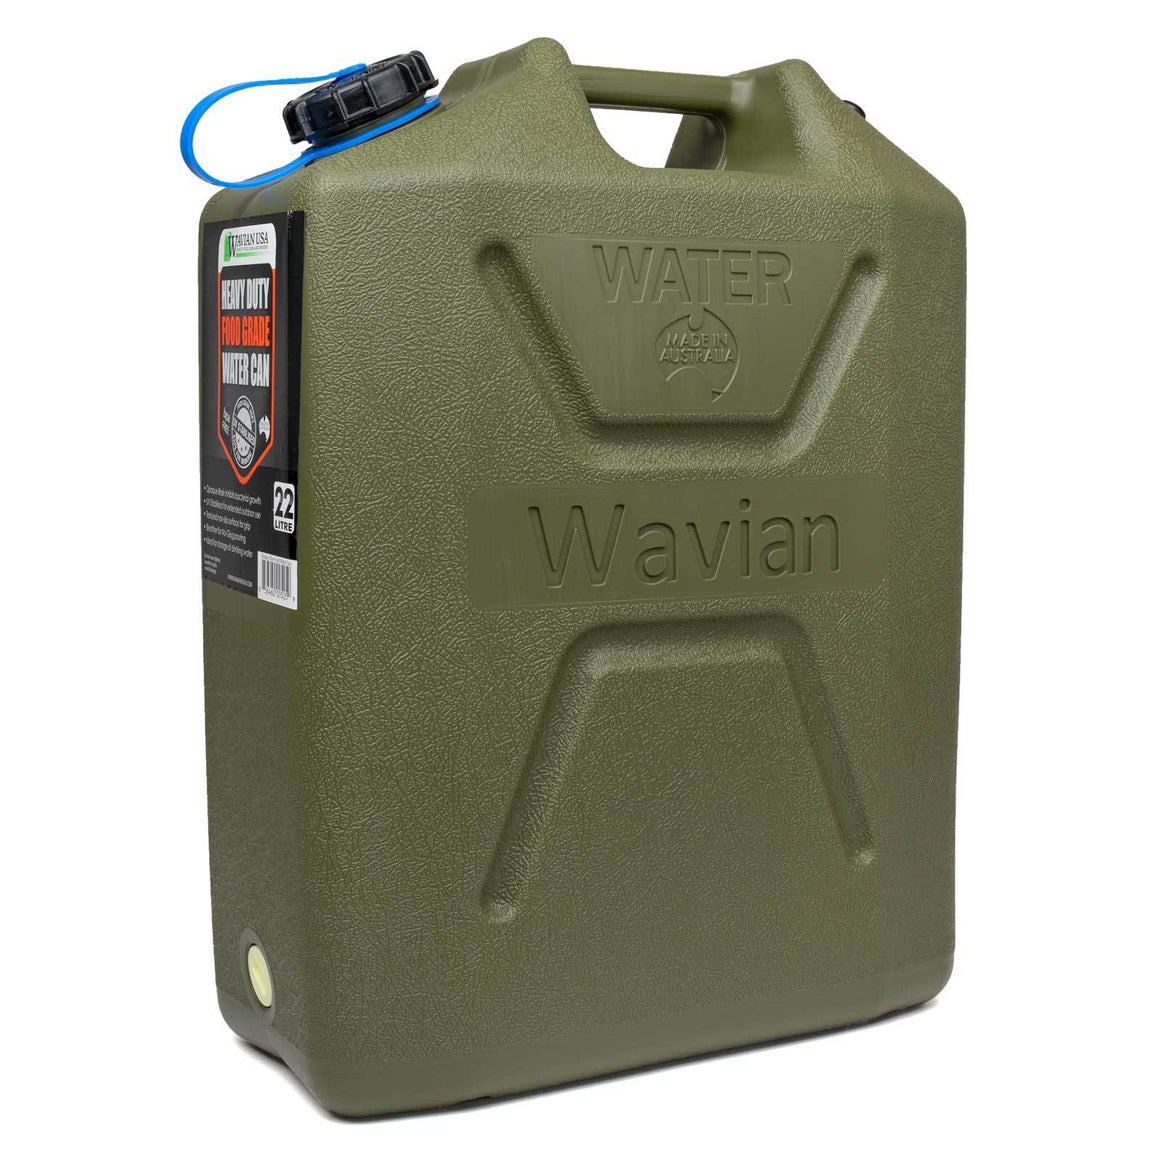 Wavian OD Green 5 Gallon Water Can